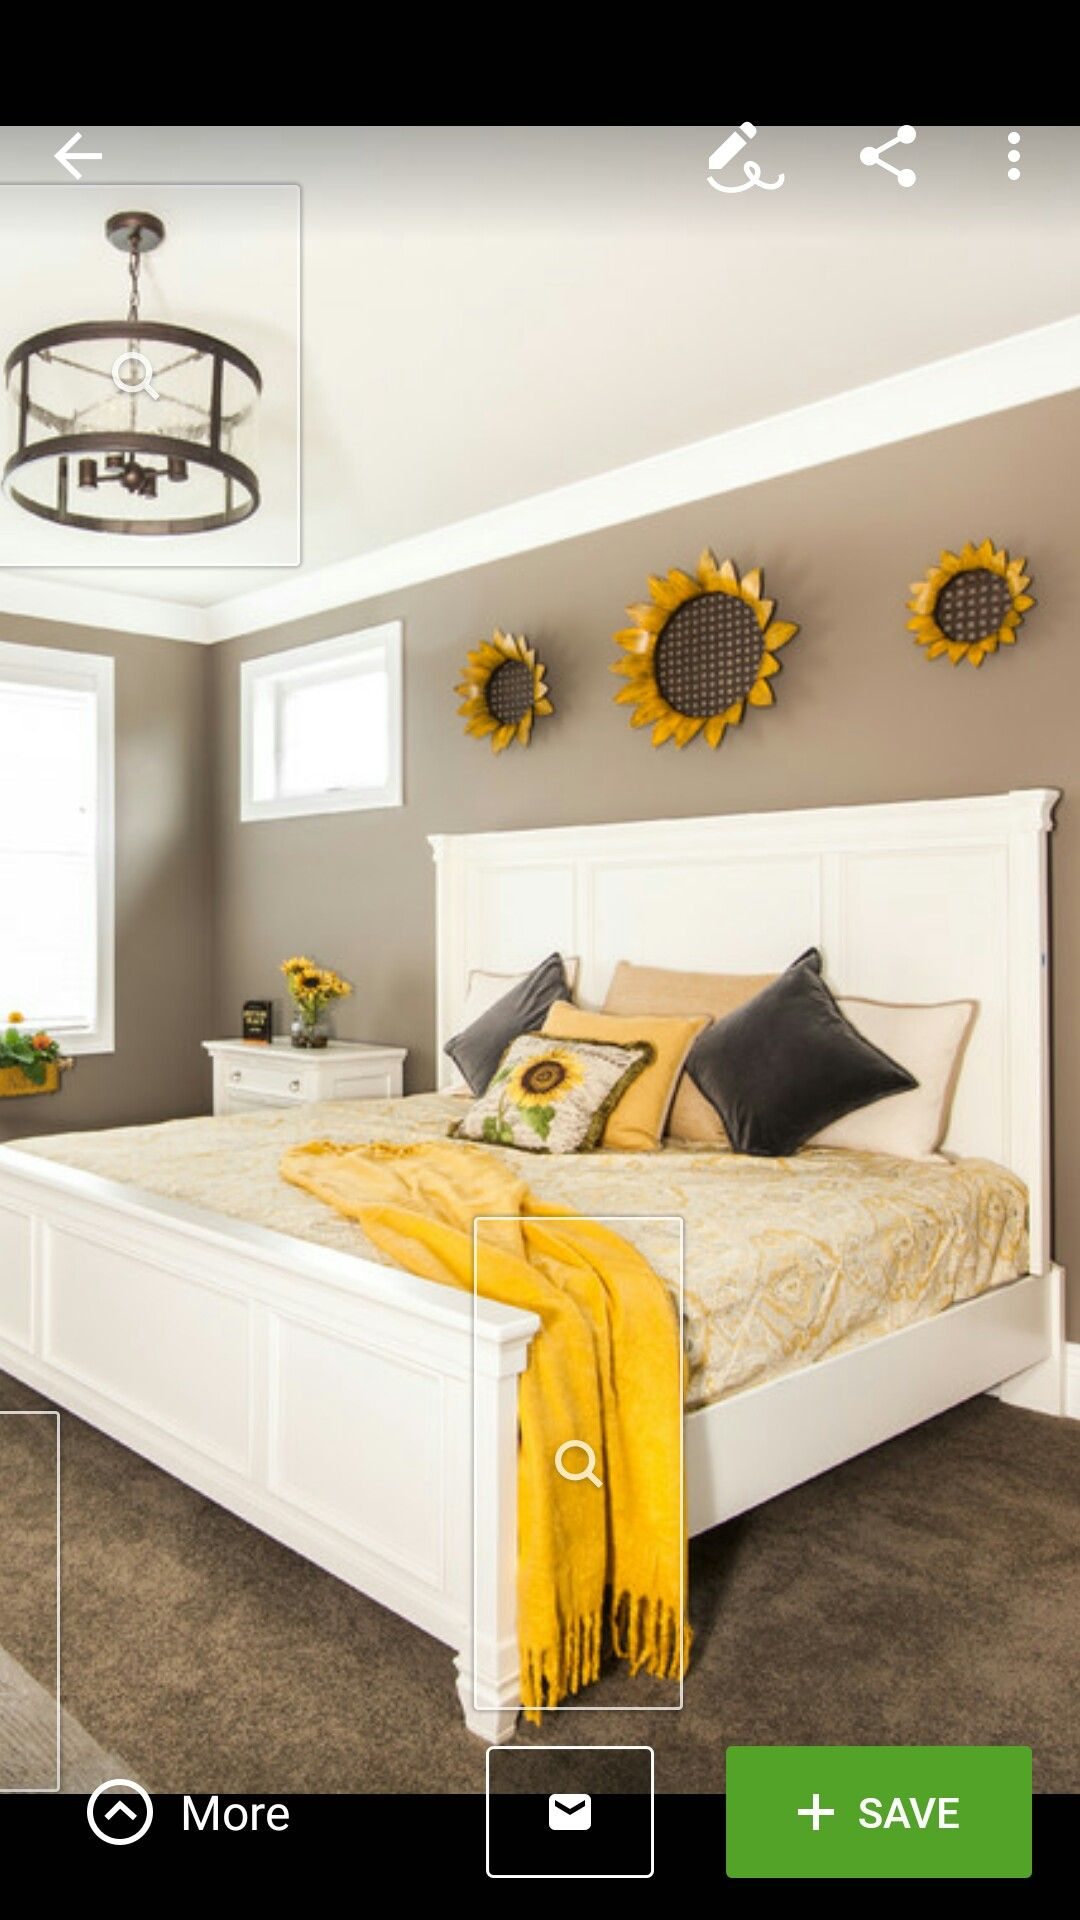 Farmhouse master bedroom Really nice and cozy feeling to it,Love